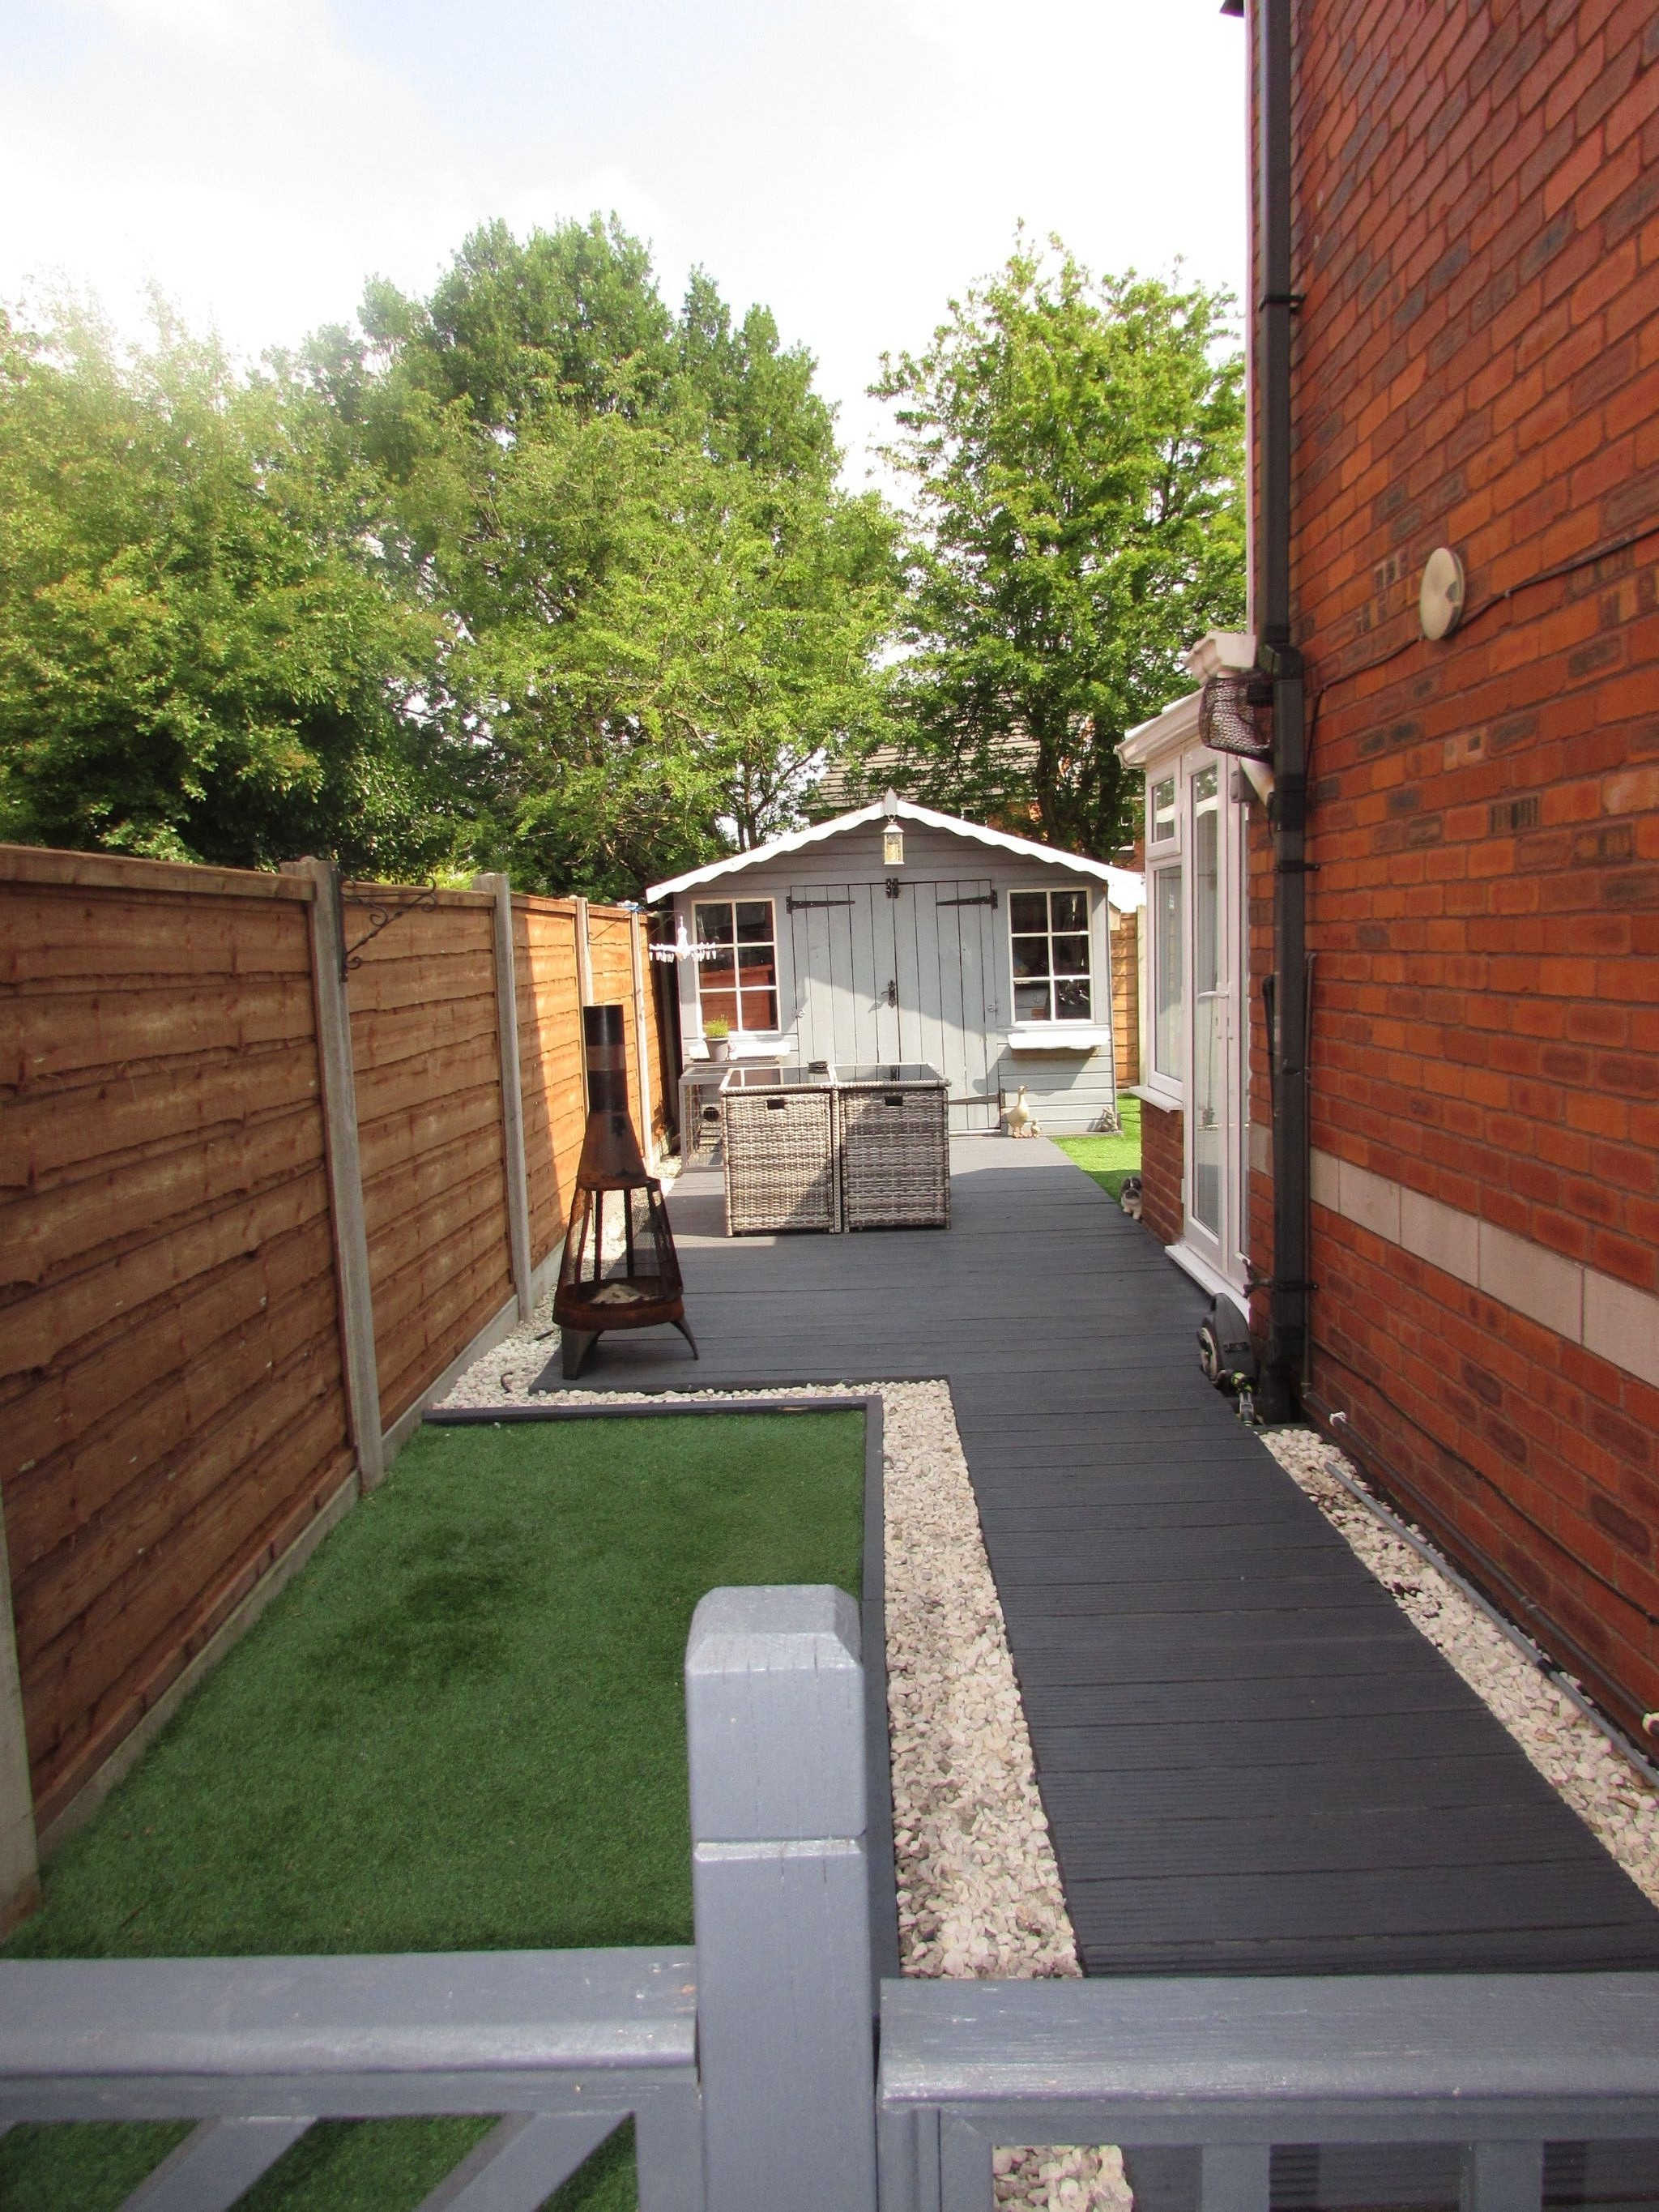 2 Bedroom Semi-detached House For Sale - Garden Side